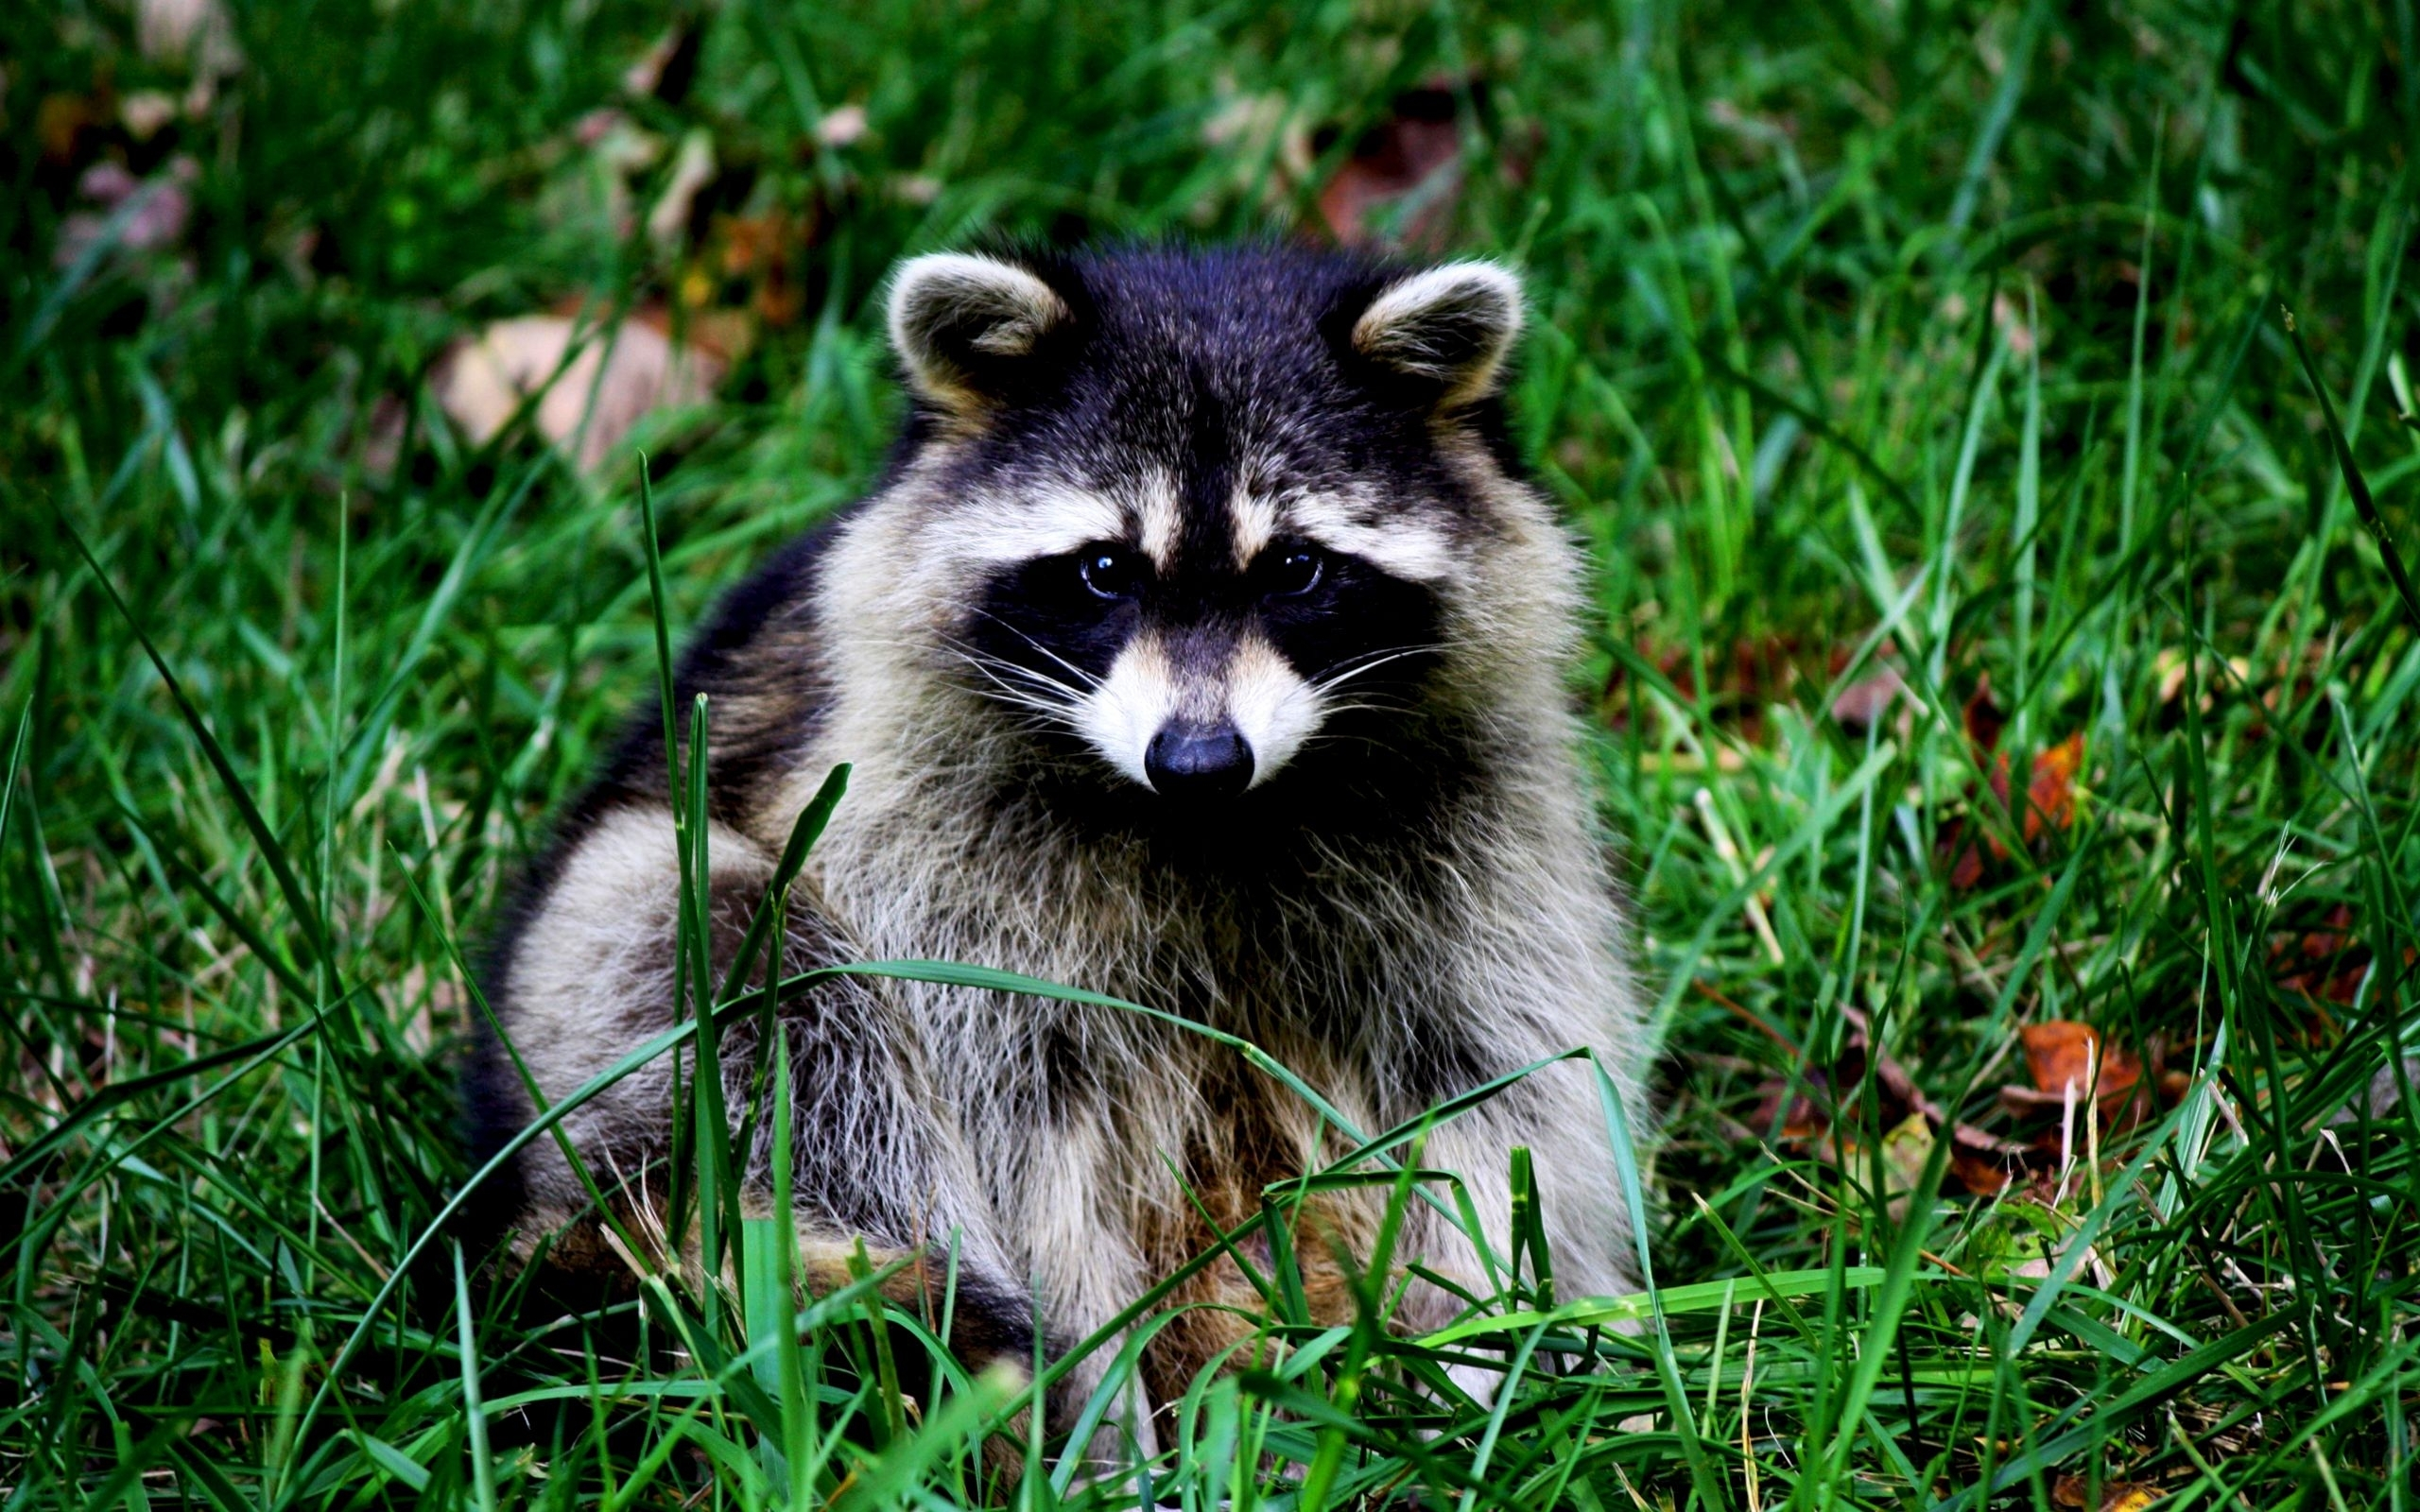 31518 download wallpaper Animals, Raccoons screensavers and pictures for free